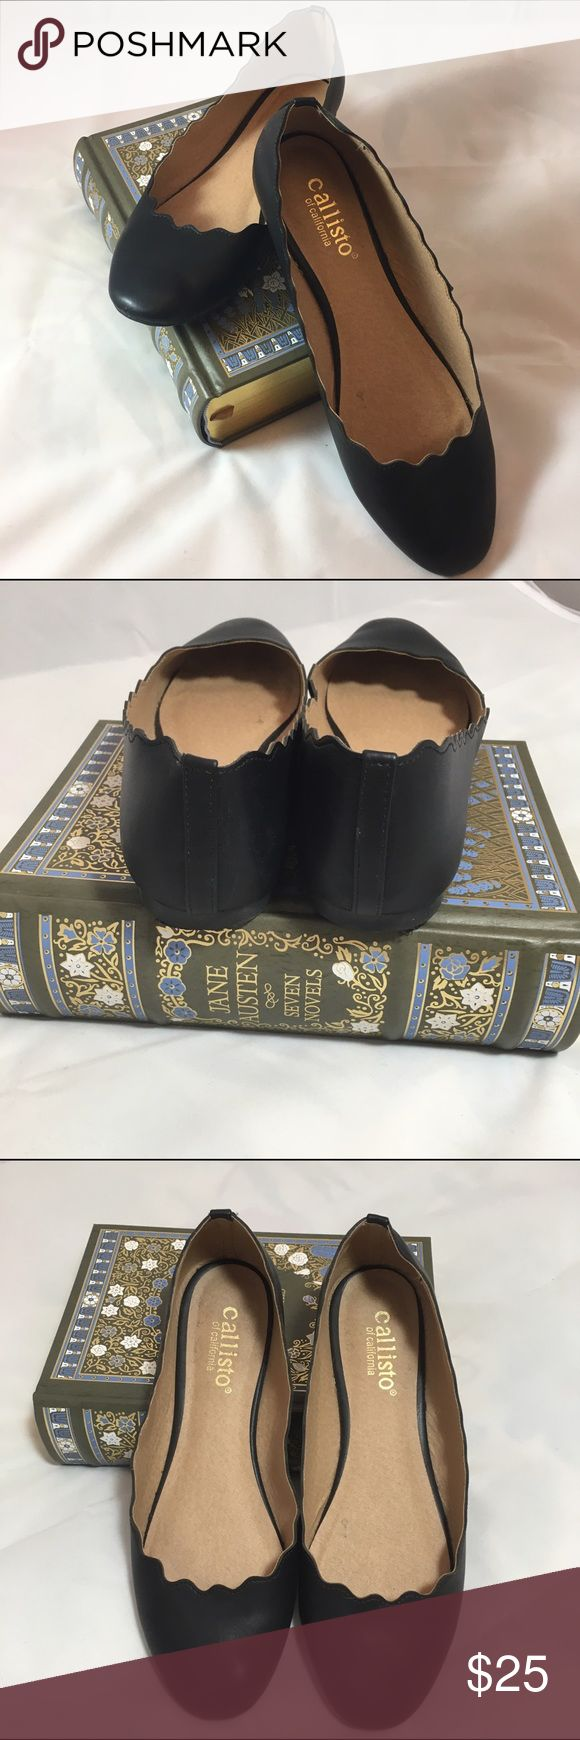 Callisto of California black flats  Callisto of California flats in black size 8  soft, flexible, comfortable material with smooth finish, scalloped edging popular this season pairs well with professional/office attire or slip on with skinny jeans  Shoes Flats & Loafers